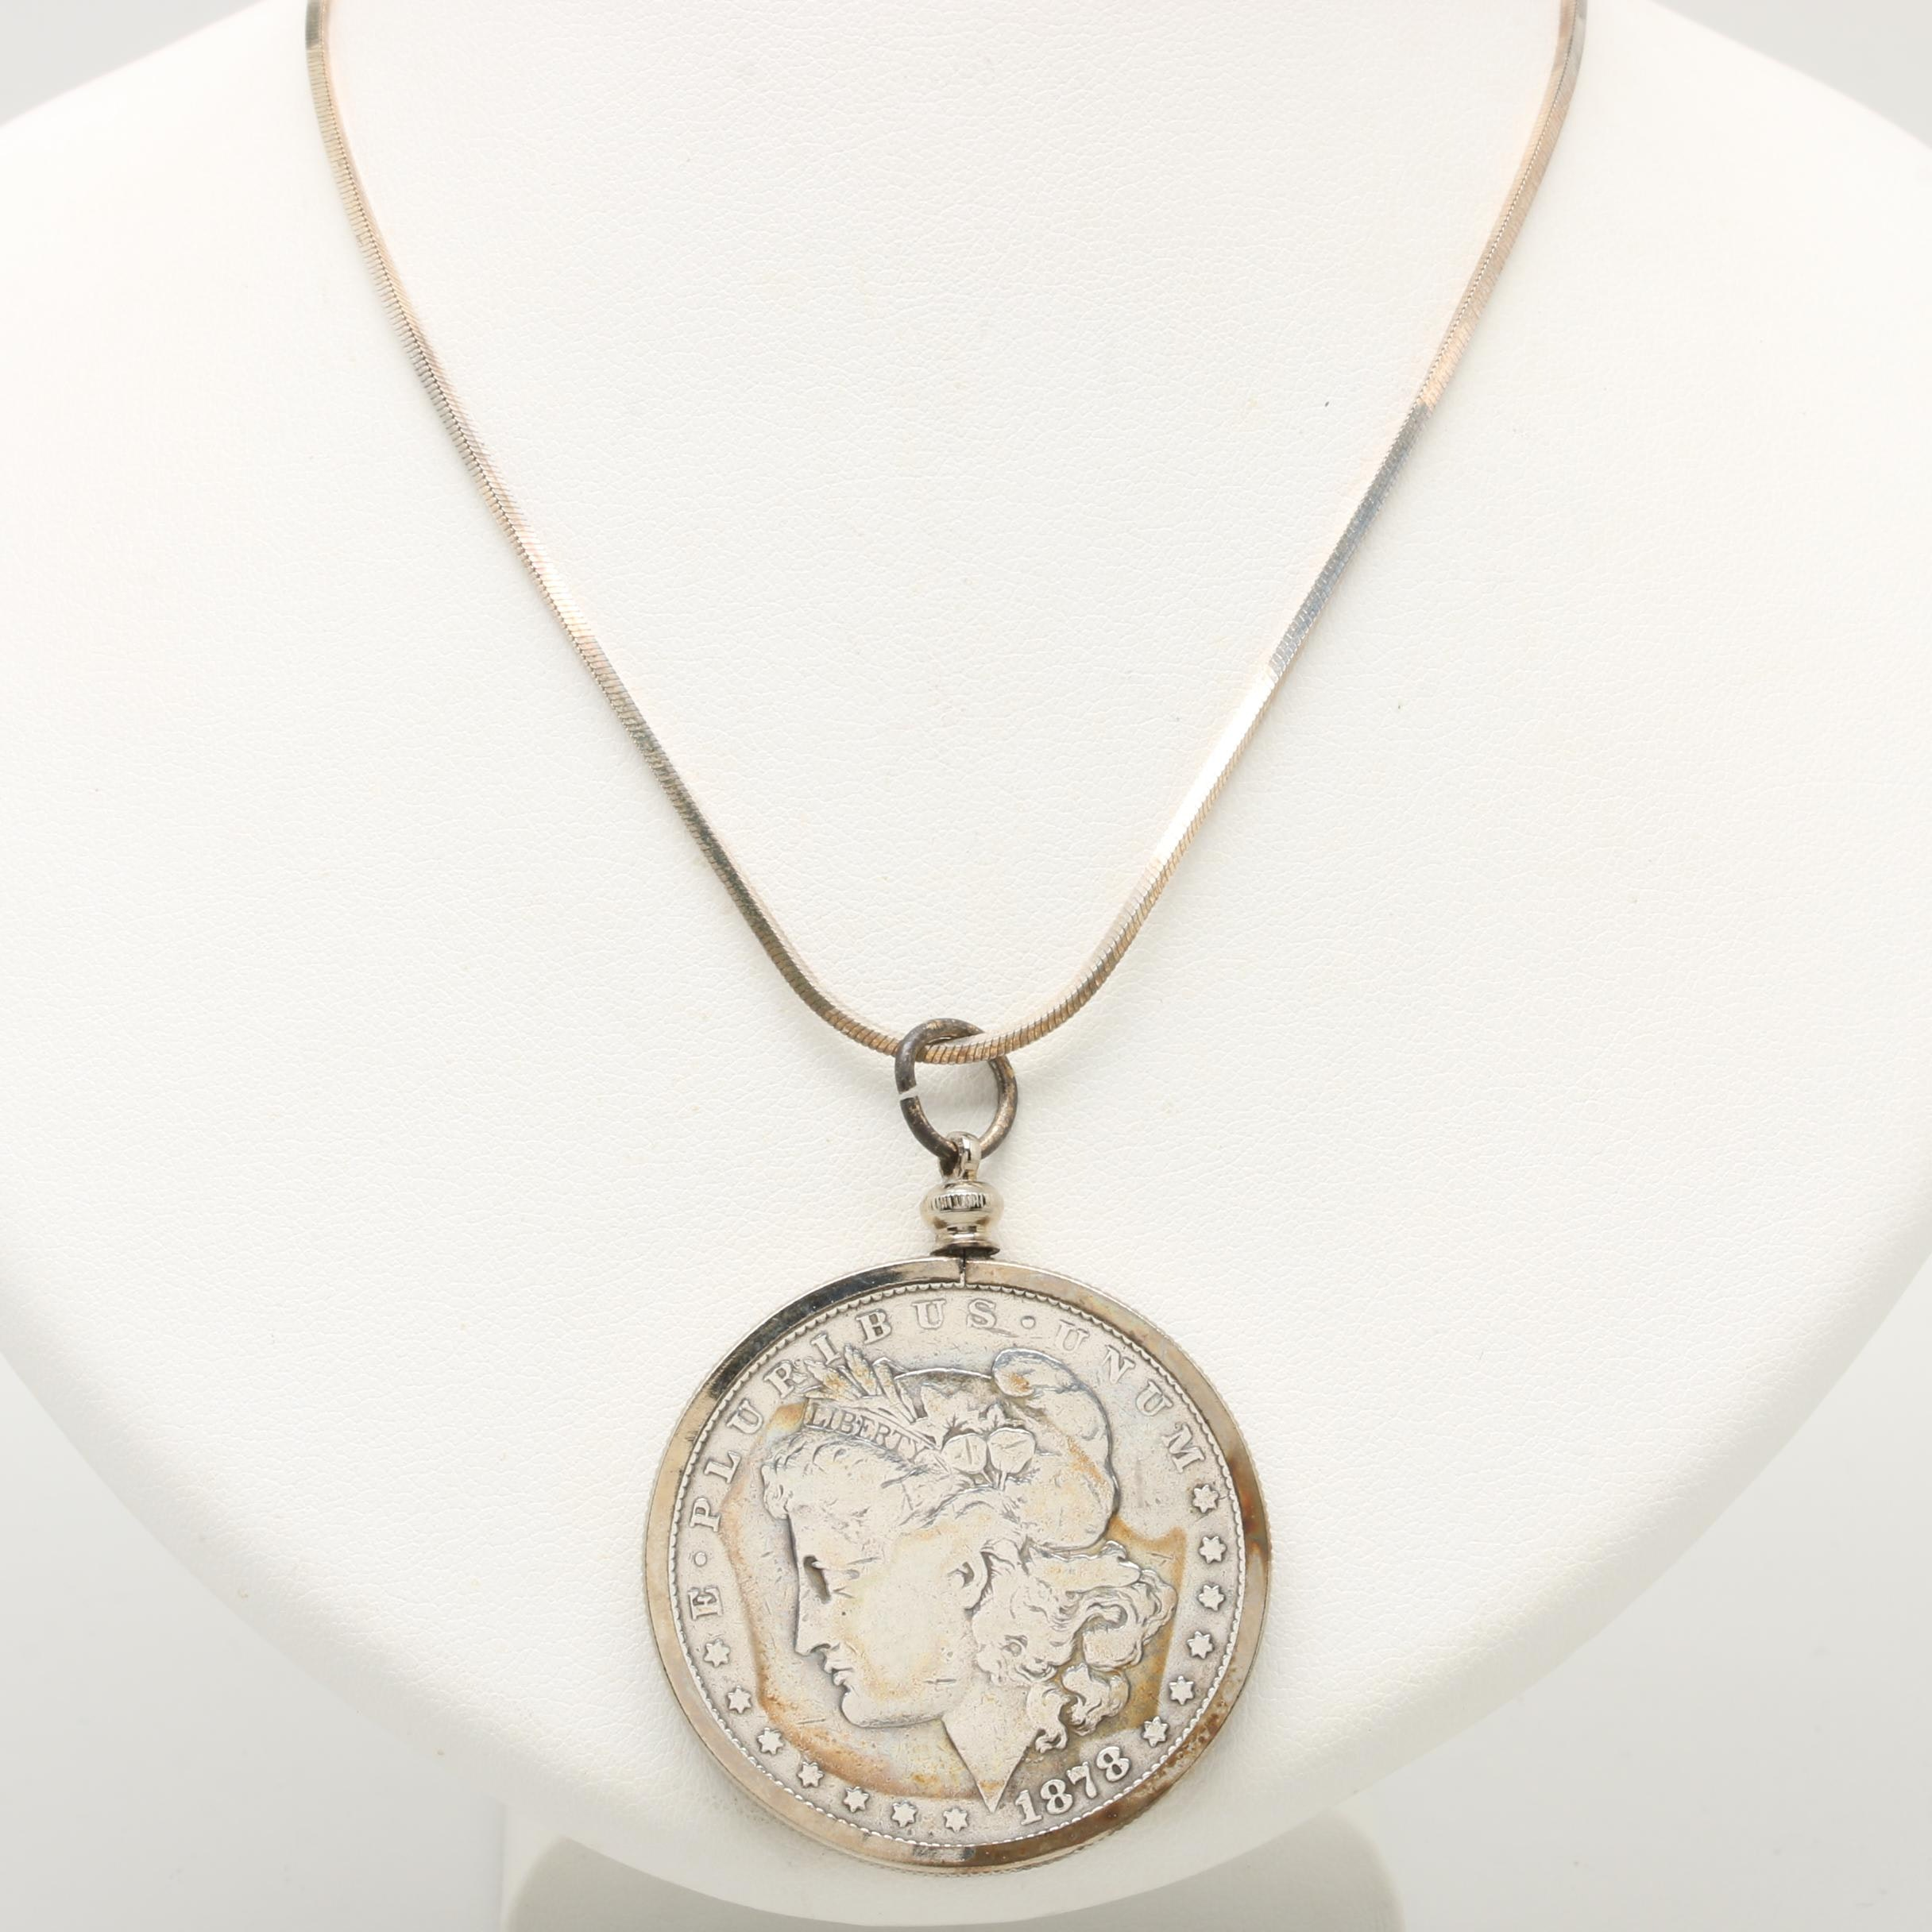 Sterling Silver Chain Necklace with an 1878-S Morgan Silver Dollar